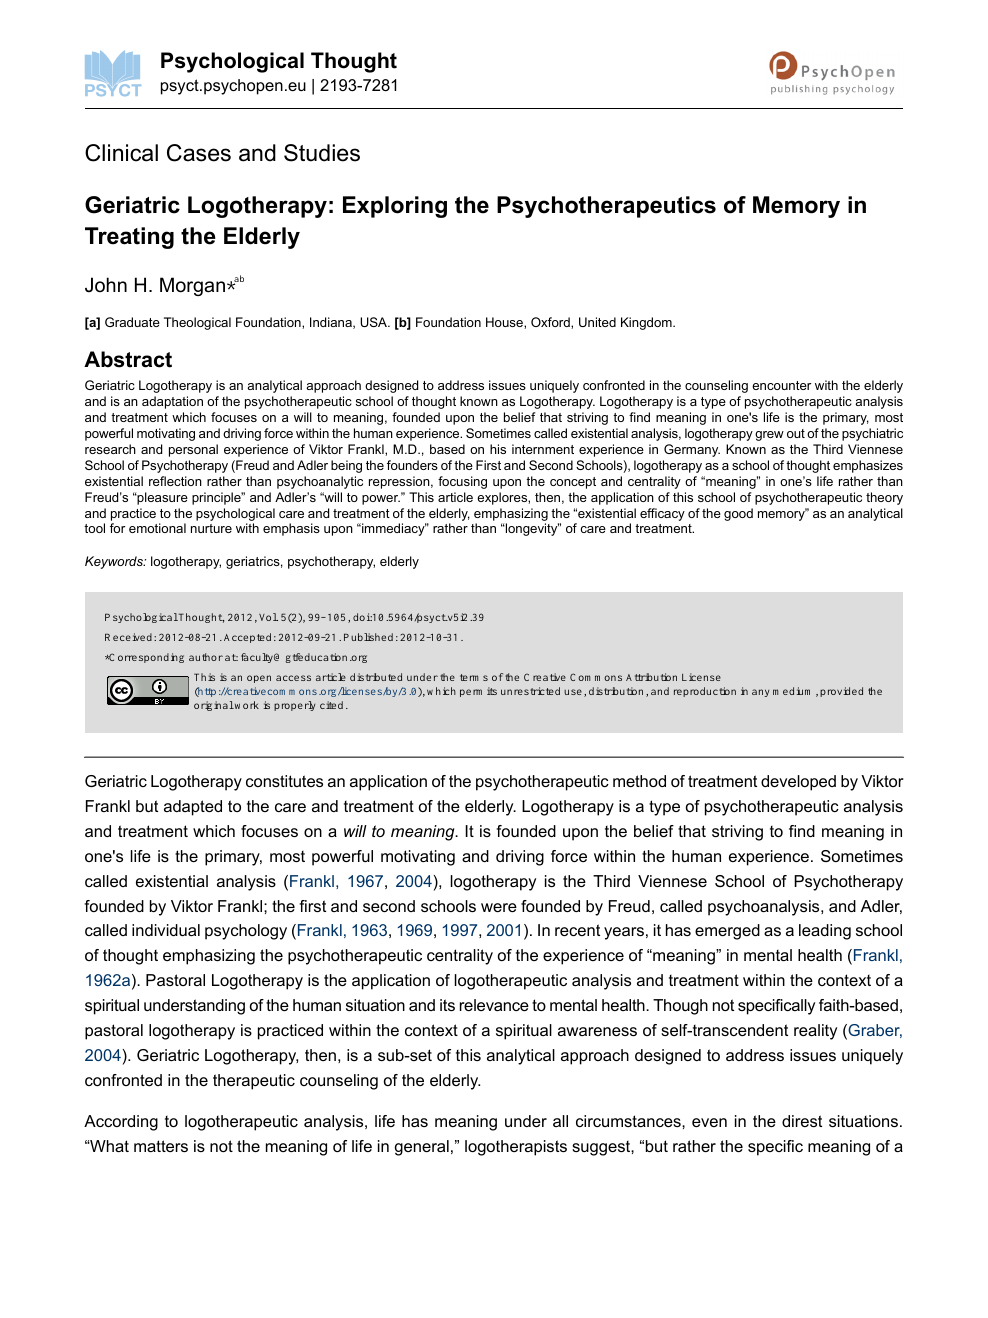 Geriatric Logotherapy: Exploring the Psychotherapeutics of